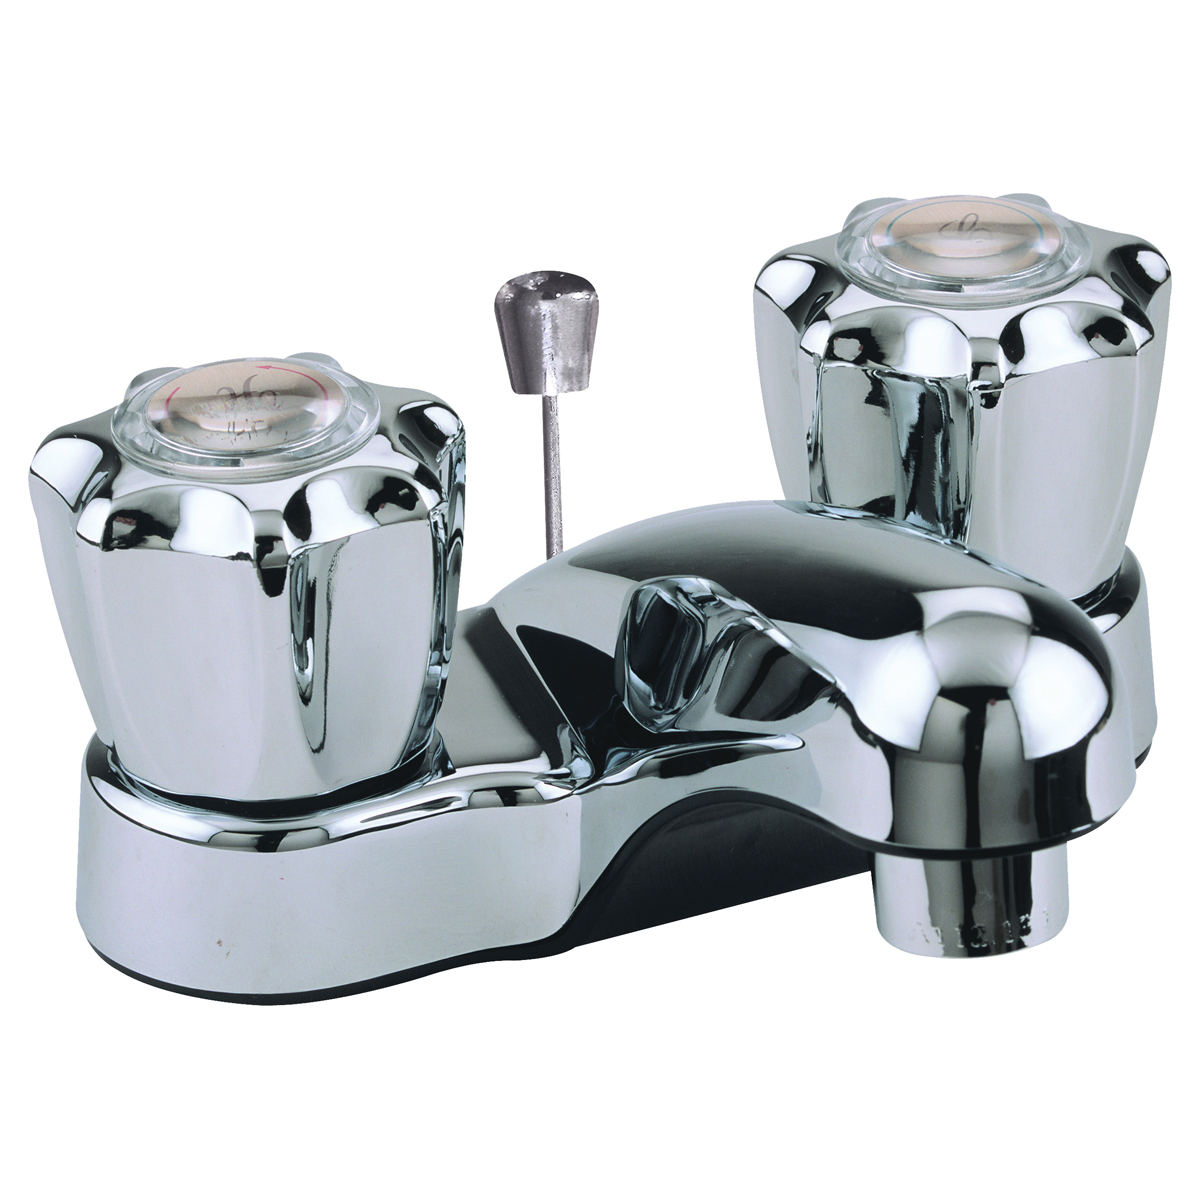 Picture of Boston Harbor PF4201RC Lavatory Faucet, 1.5 gpm, 2-Faucet Handle, ABS, Chrome, Round Handle